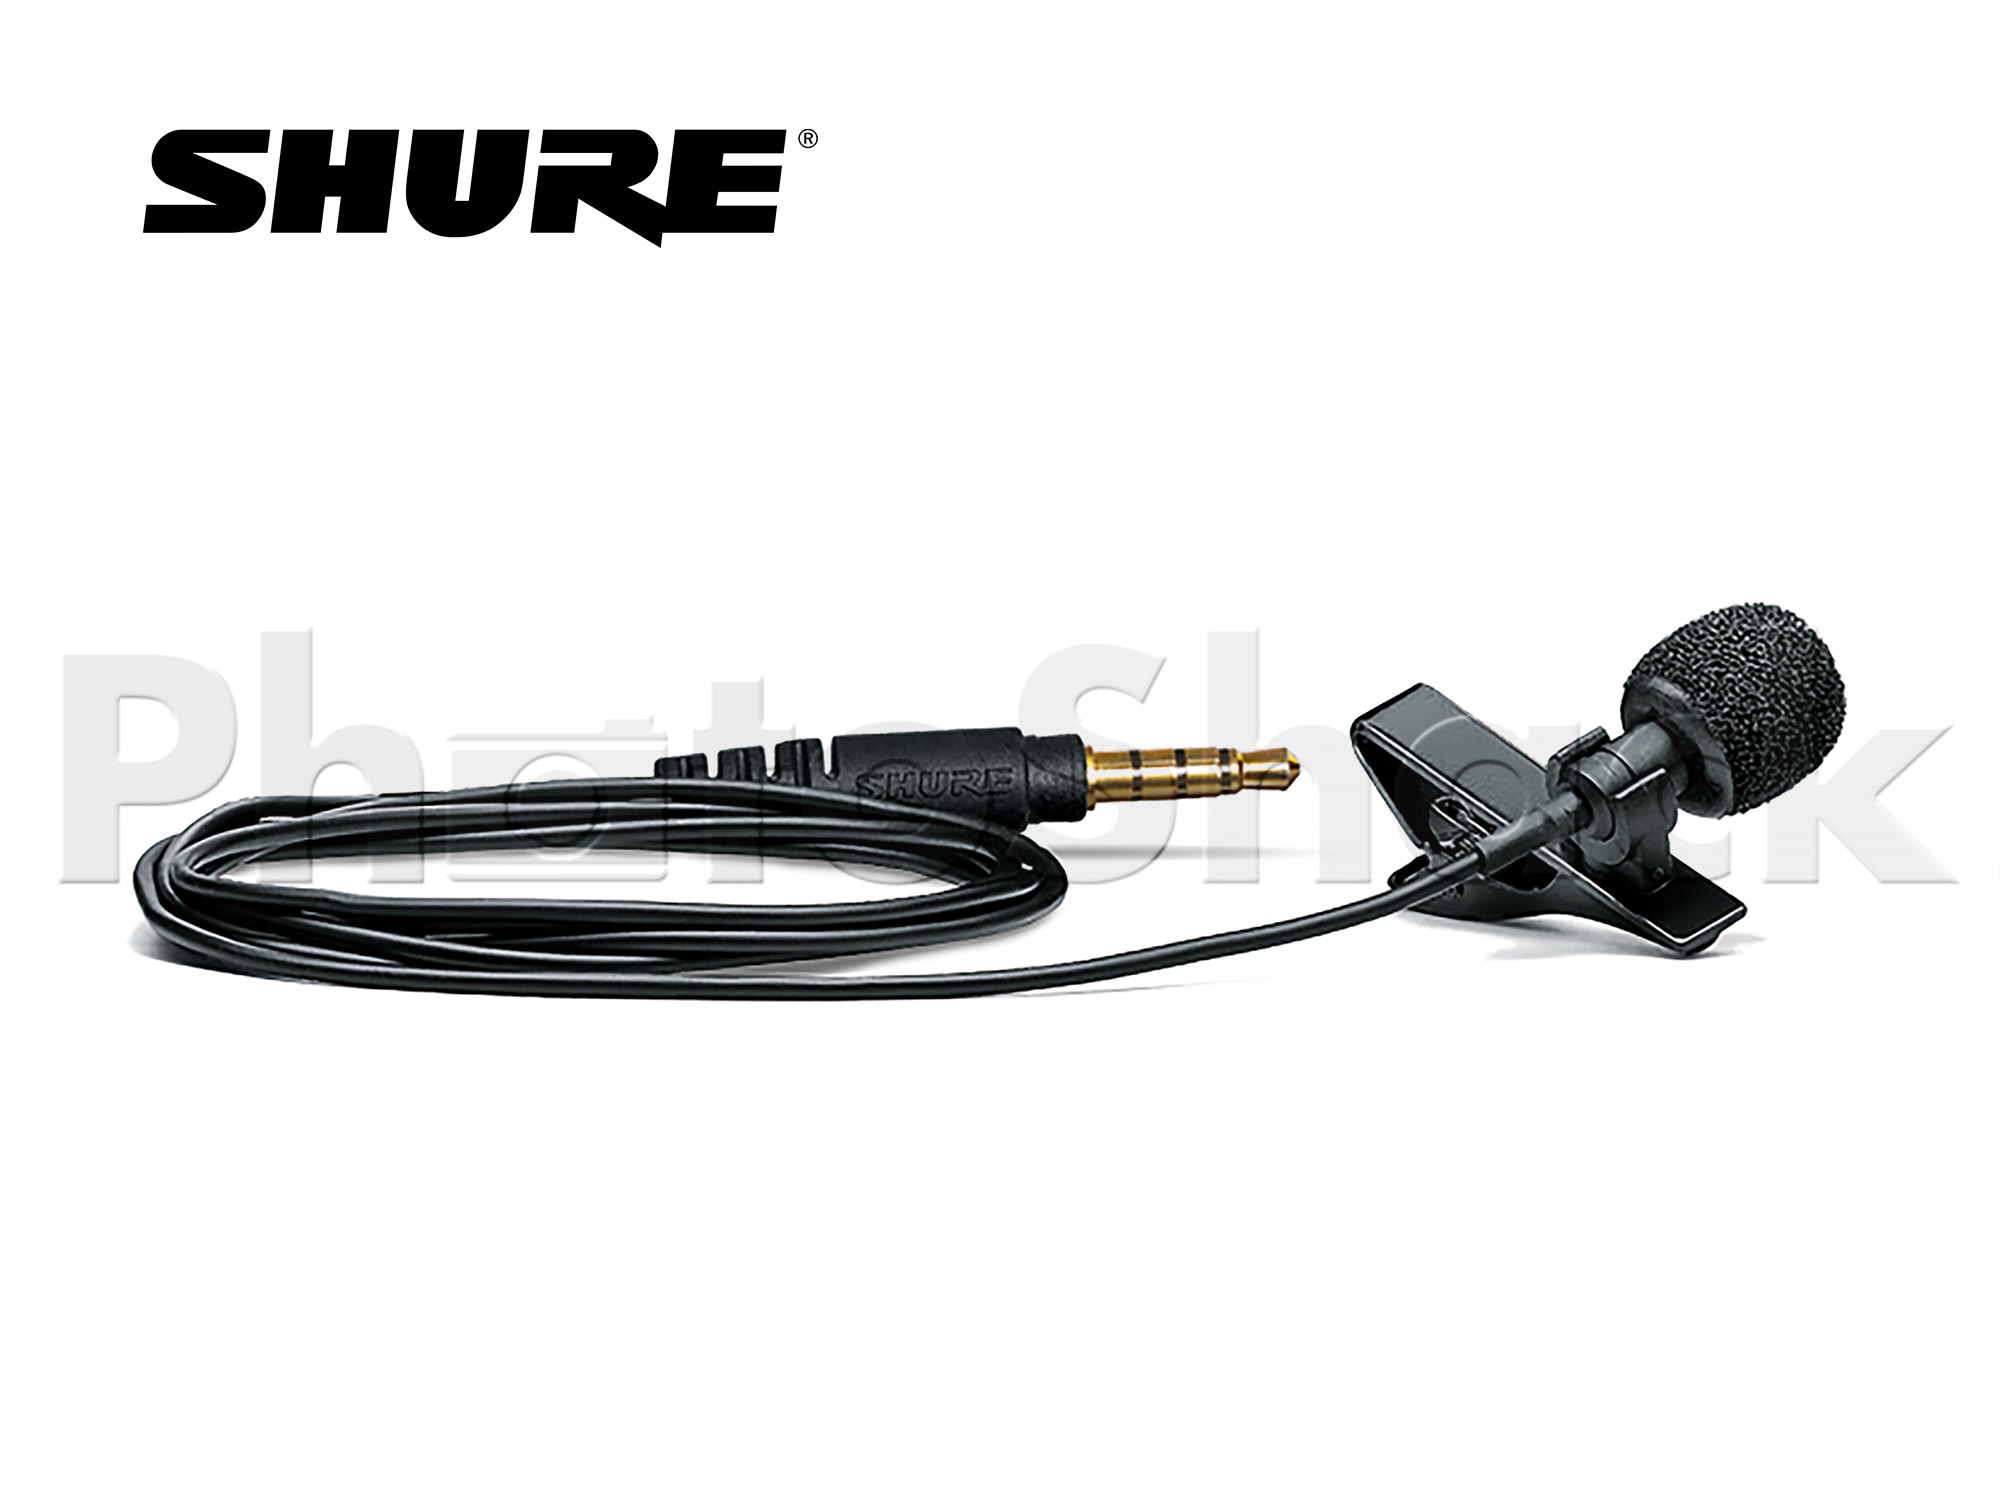 Shure Omnidirectional Lavalier Microphone